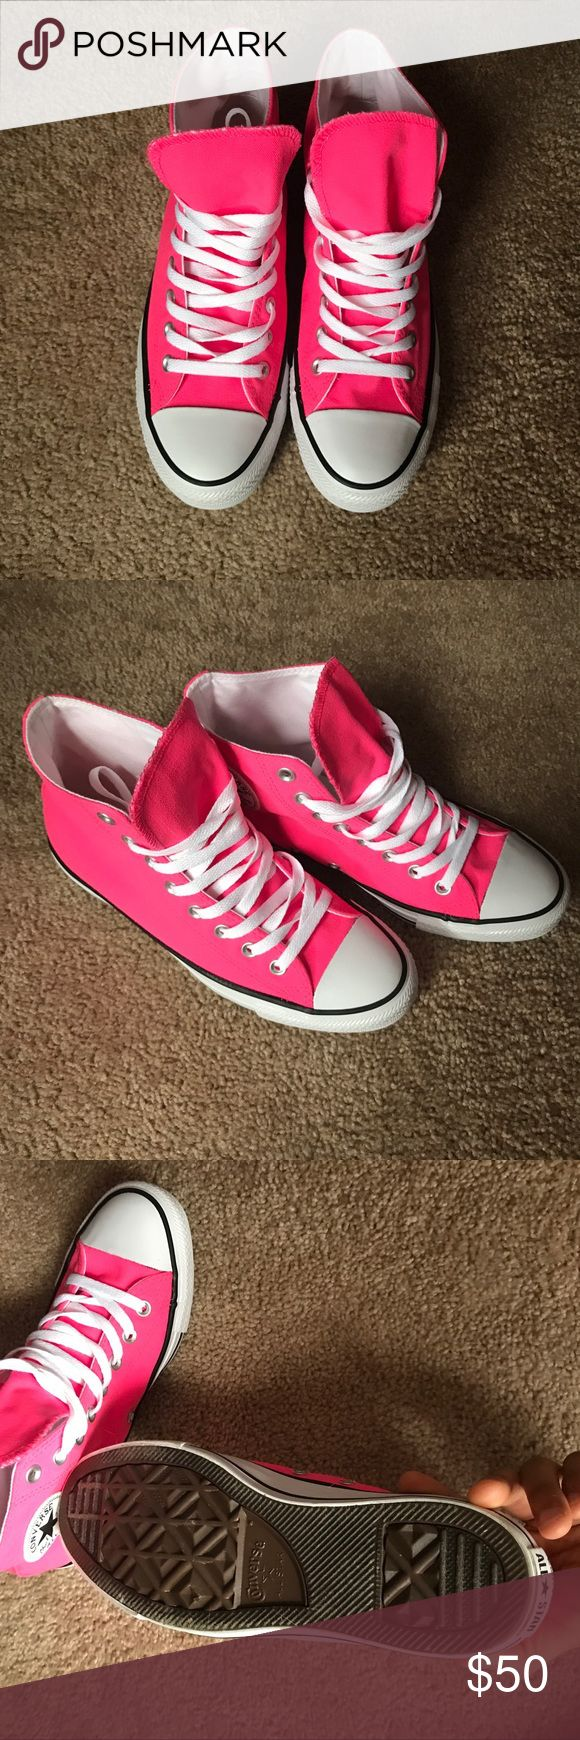 Neon pink high top converse Men's 7, women's 9. I usually wear a 9-9.5 in shoes and these fit perfect. They have never been worn and are in 10/10 condition. Will come with original box when shipped! Converse Shoes Athletic Shoes